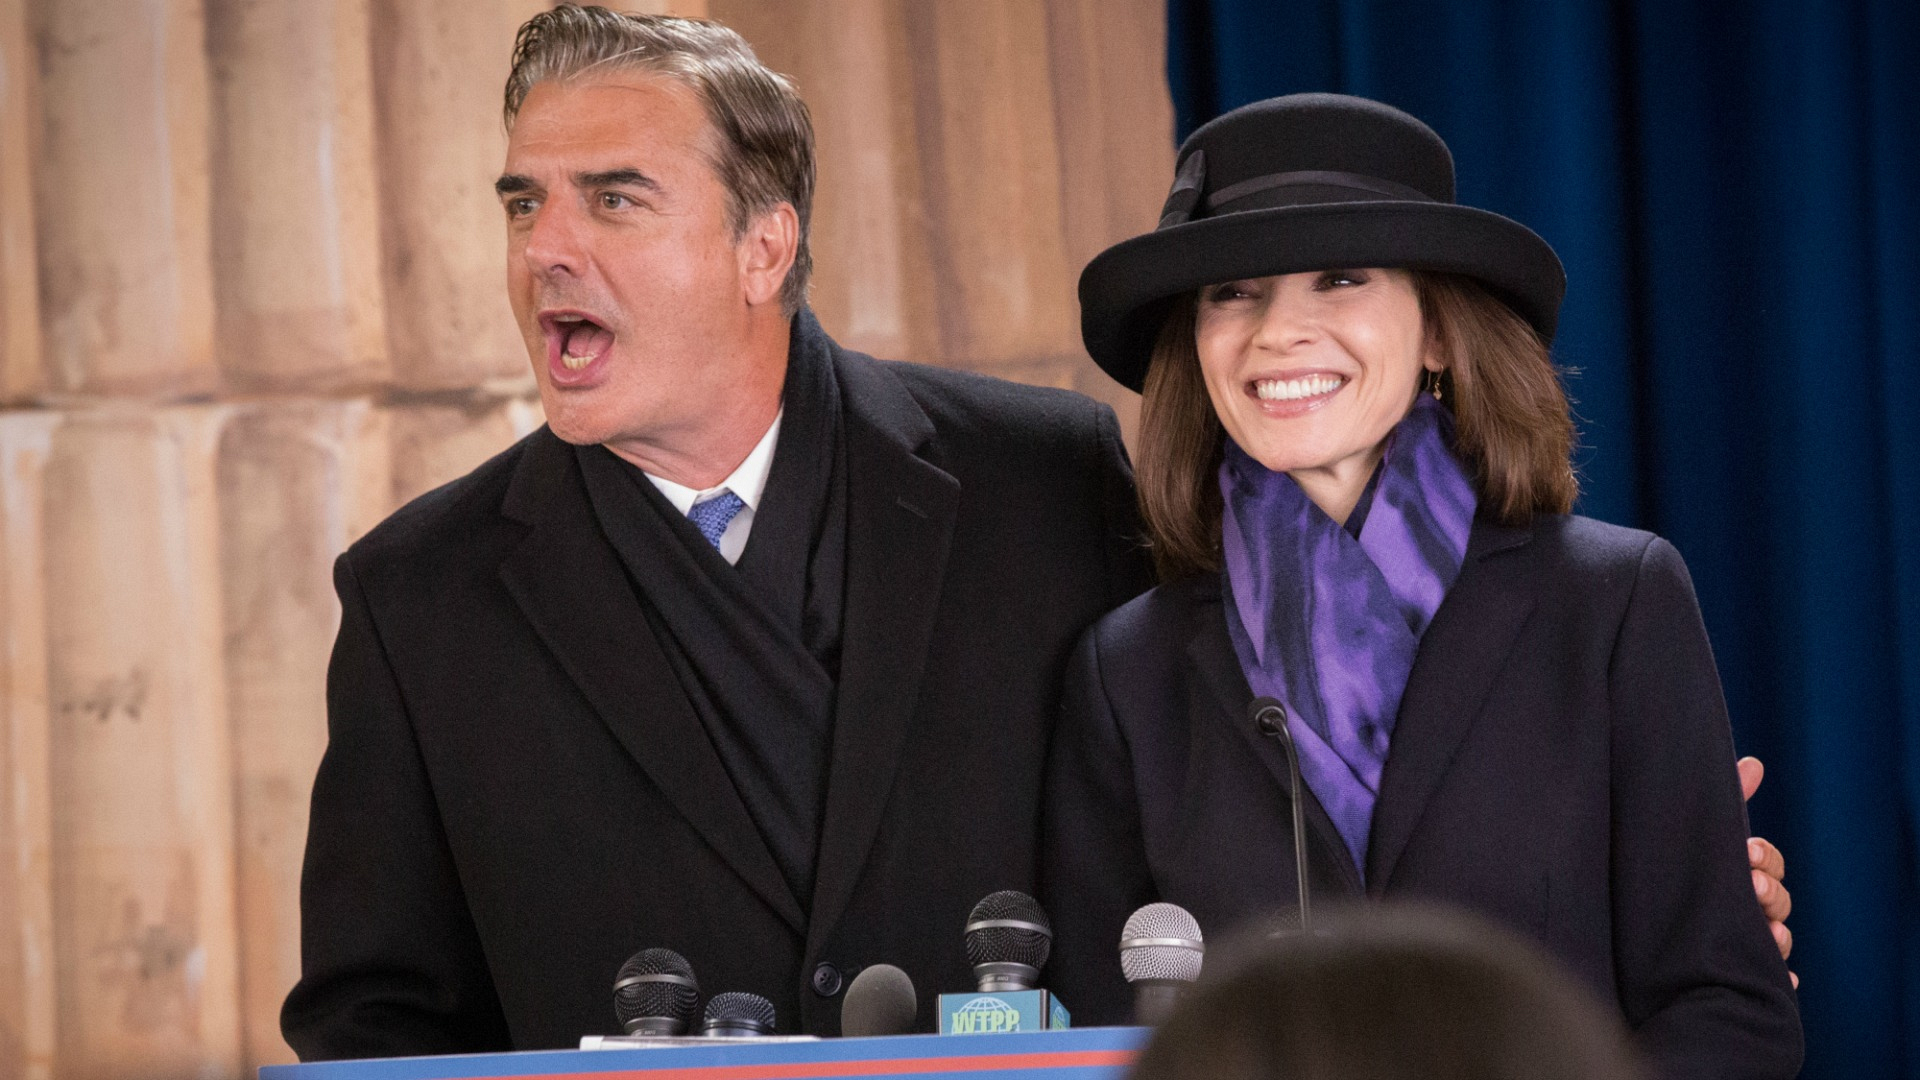 It's Alicia and Peter Florrick from The Good Wife!